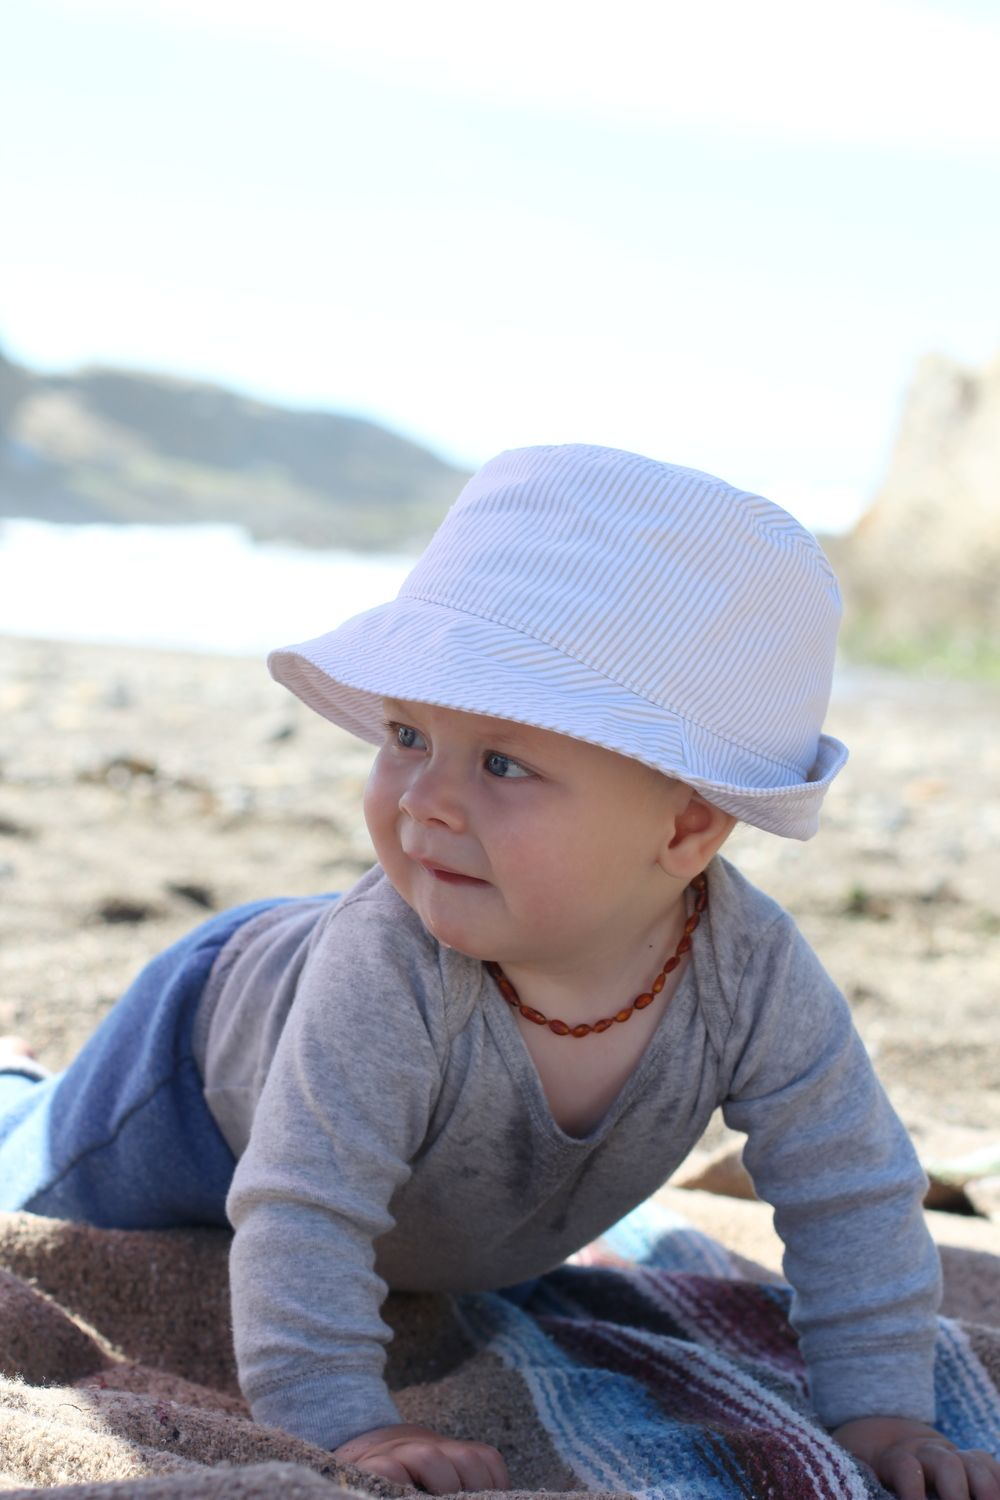 64db0f9e7f6 Baby Boy Fedora Sun Hat by Blue Corduroy. So many cute stripes to choose  from!